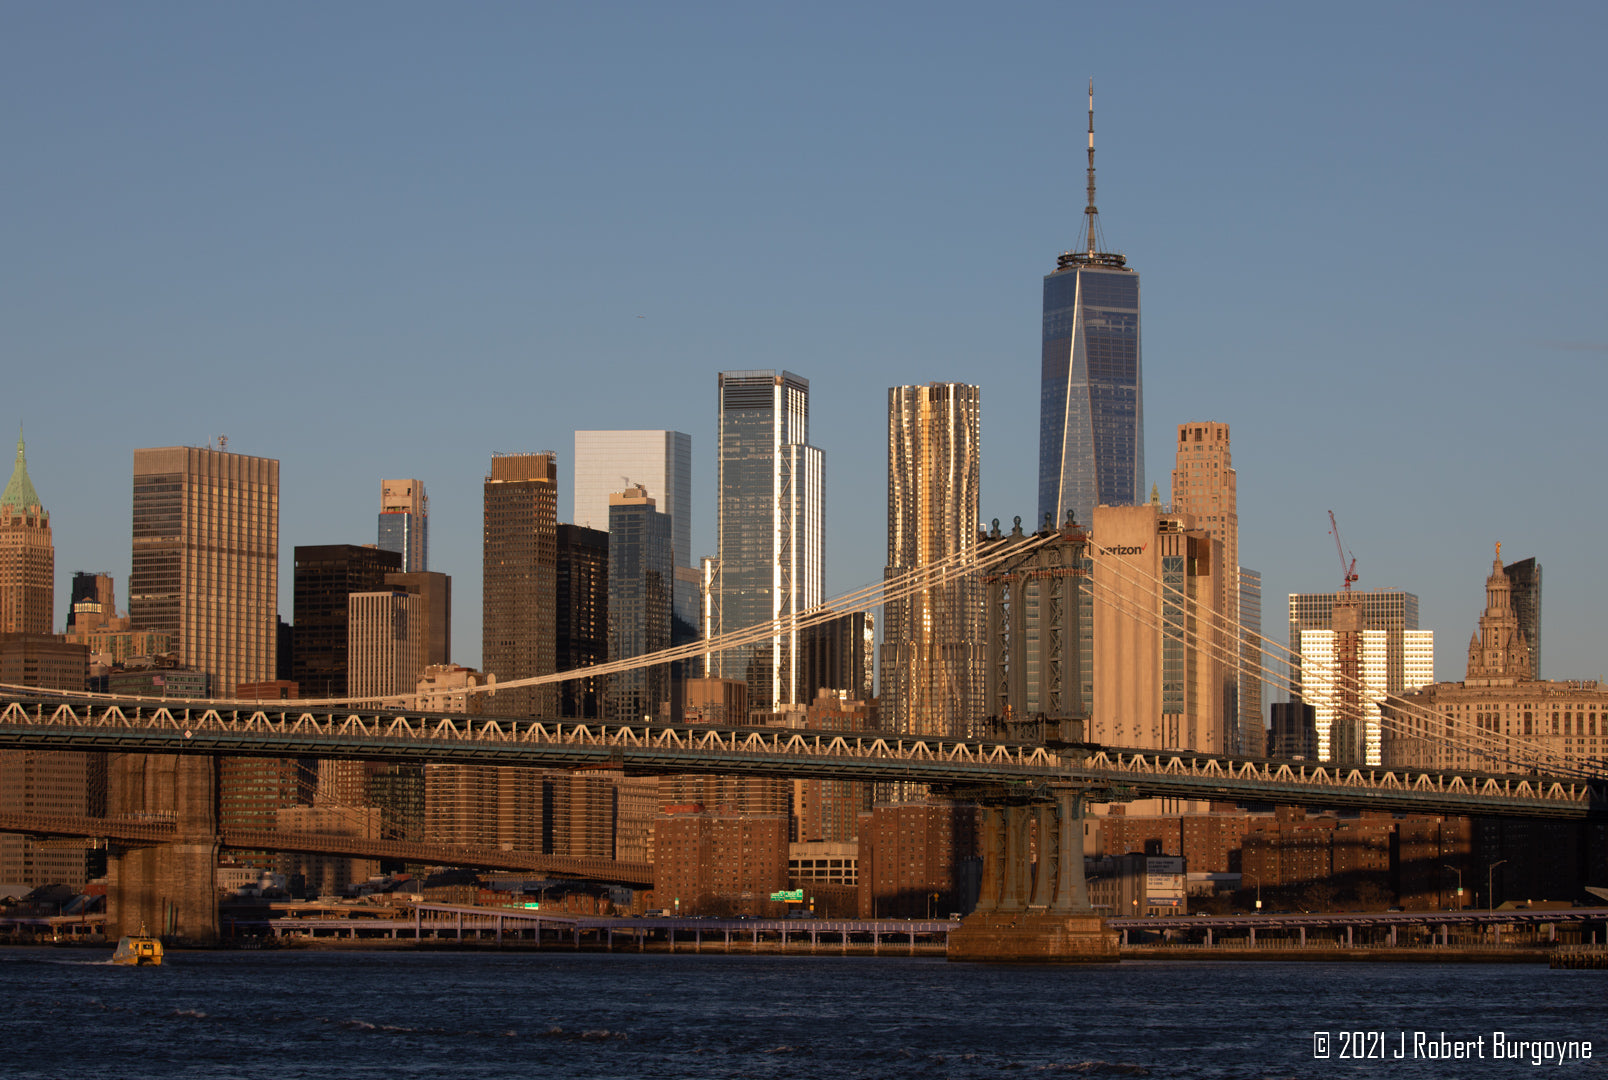 Image of Manhattan Bridge on the East River with skyscrapers in the background